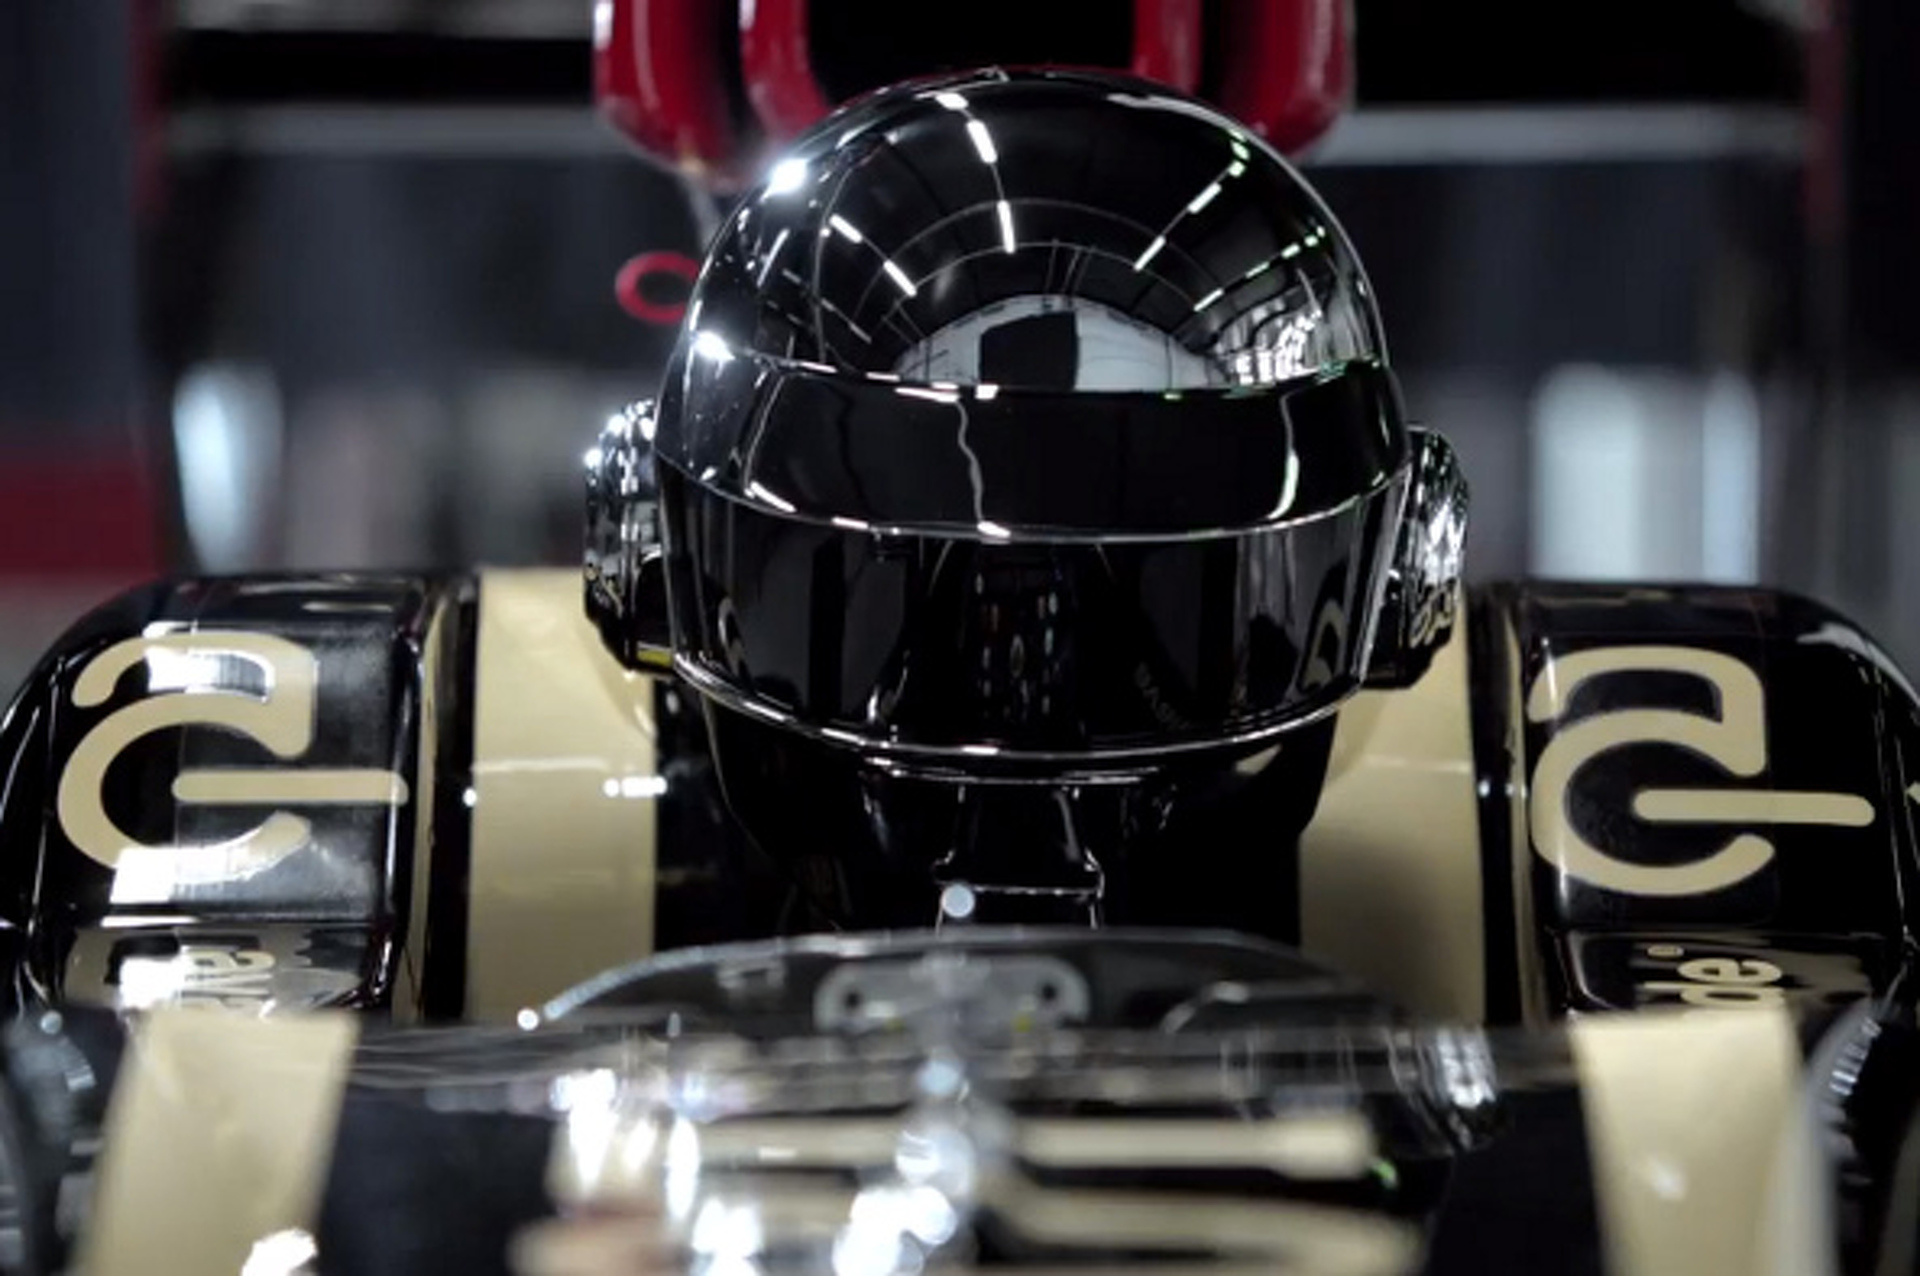 Daft Punk Drives the Lotus F1 Car [video]